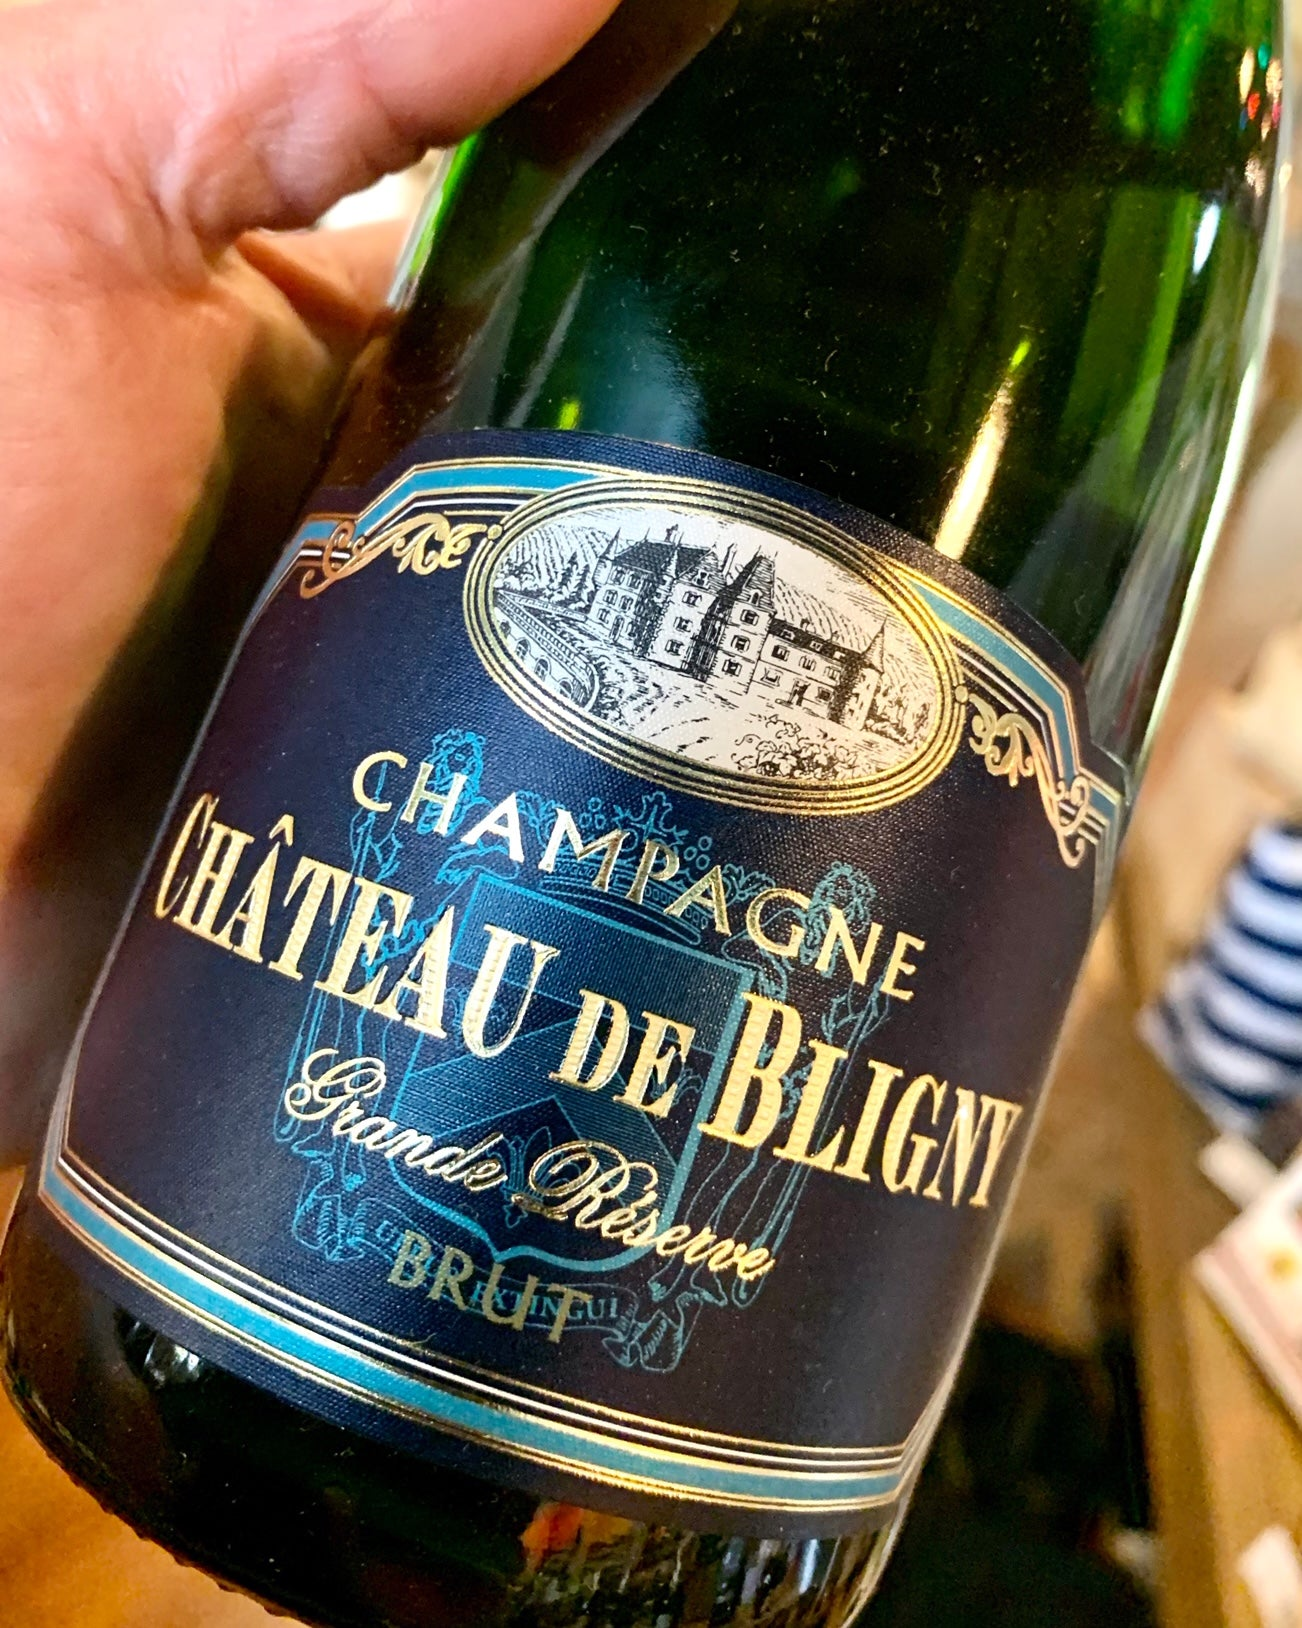 Chateau Bligny Brut Champagne 750ml